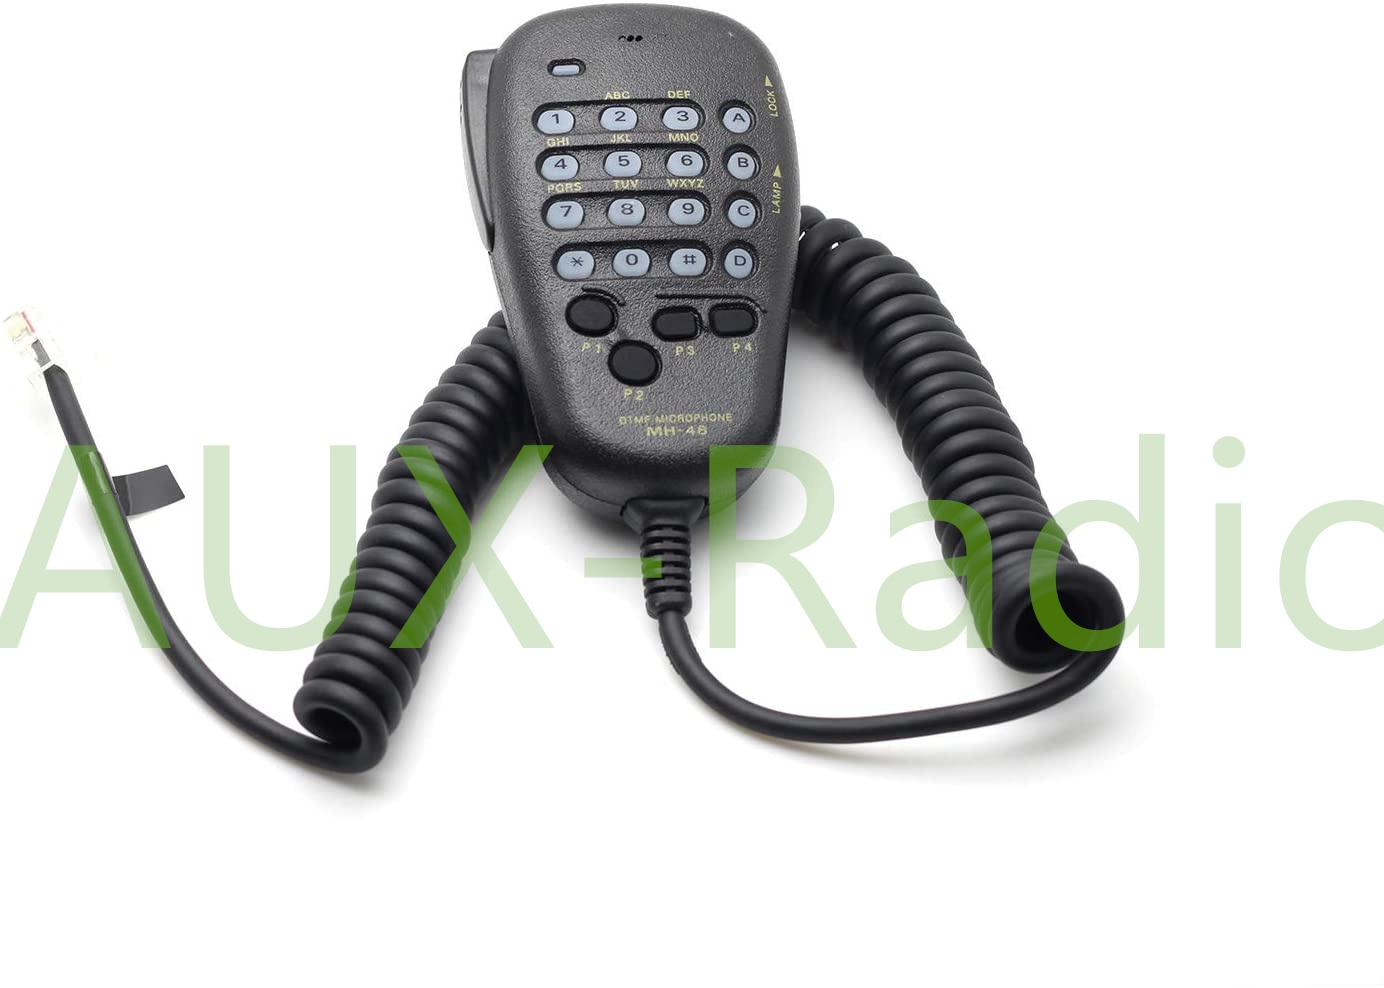 MH-48A6J 6 Pin Coil Cord DTMF Speaker Microphone with Button for Yaesu FT-7800R FT-8800R FT-8900R FT-7900R FT-7100M1 FT-1900R